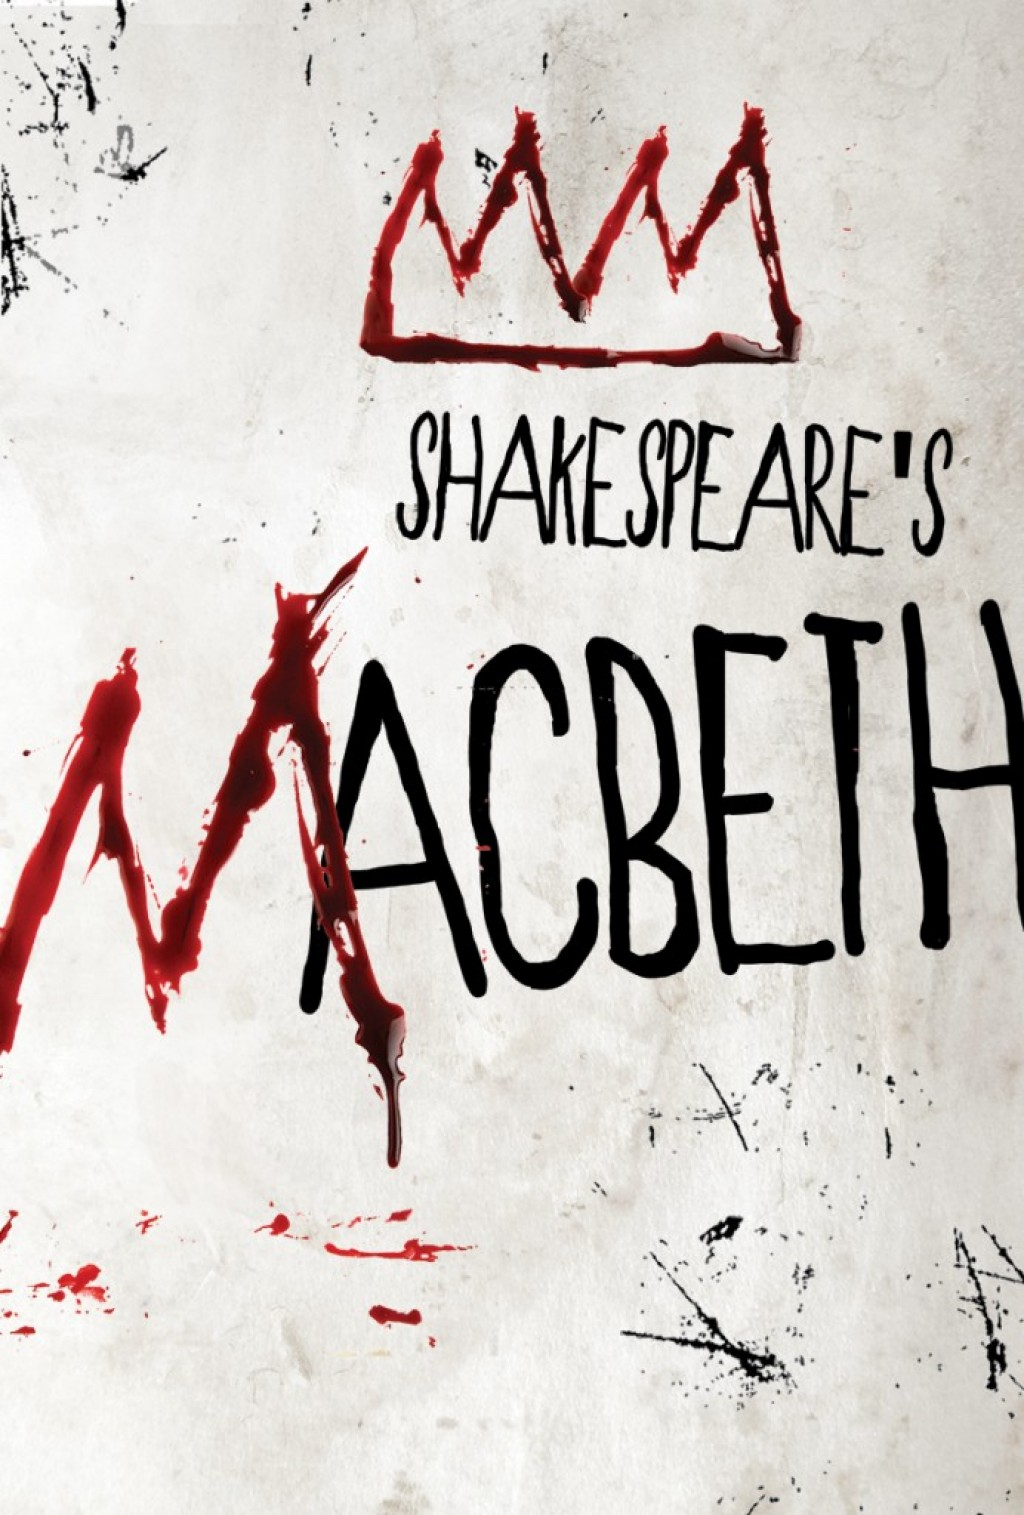 an analysis of the three parts of tragedy in macbeth by william shakespeare Get free homework help on william shakespeare's macbeth: play summary,  in  macbeth, william shakespeare's tragedy about power, ambition, deceit, and  murder, the three witches foretell macbeth's rise to king of scotland but   macbeth exhibits elements that reflect the greatest christian tragedy of all: the  fall of man.